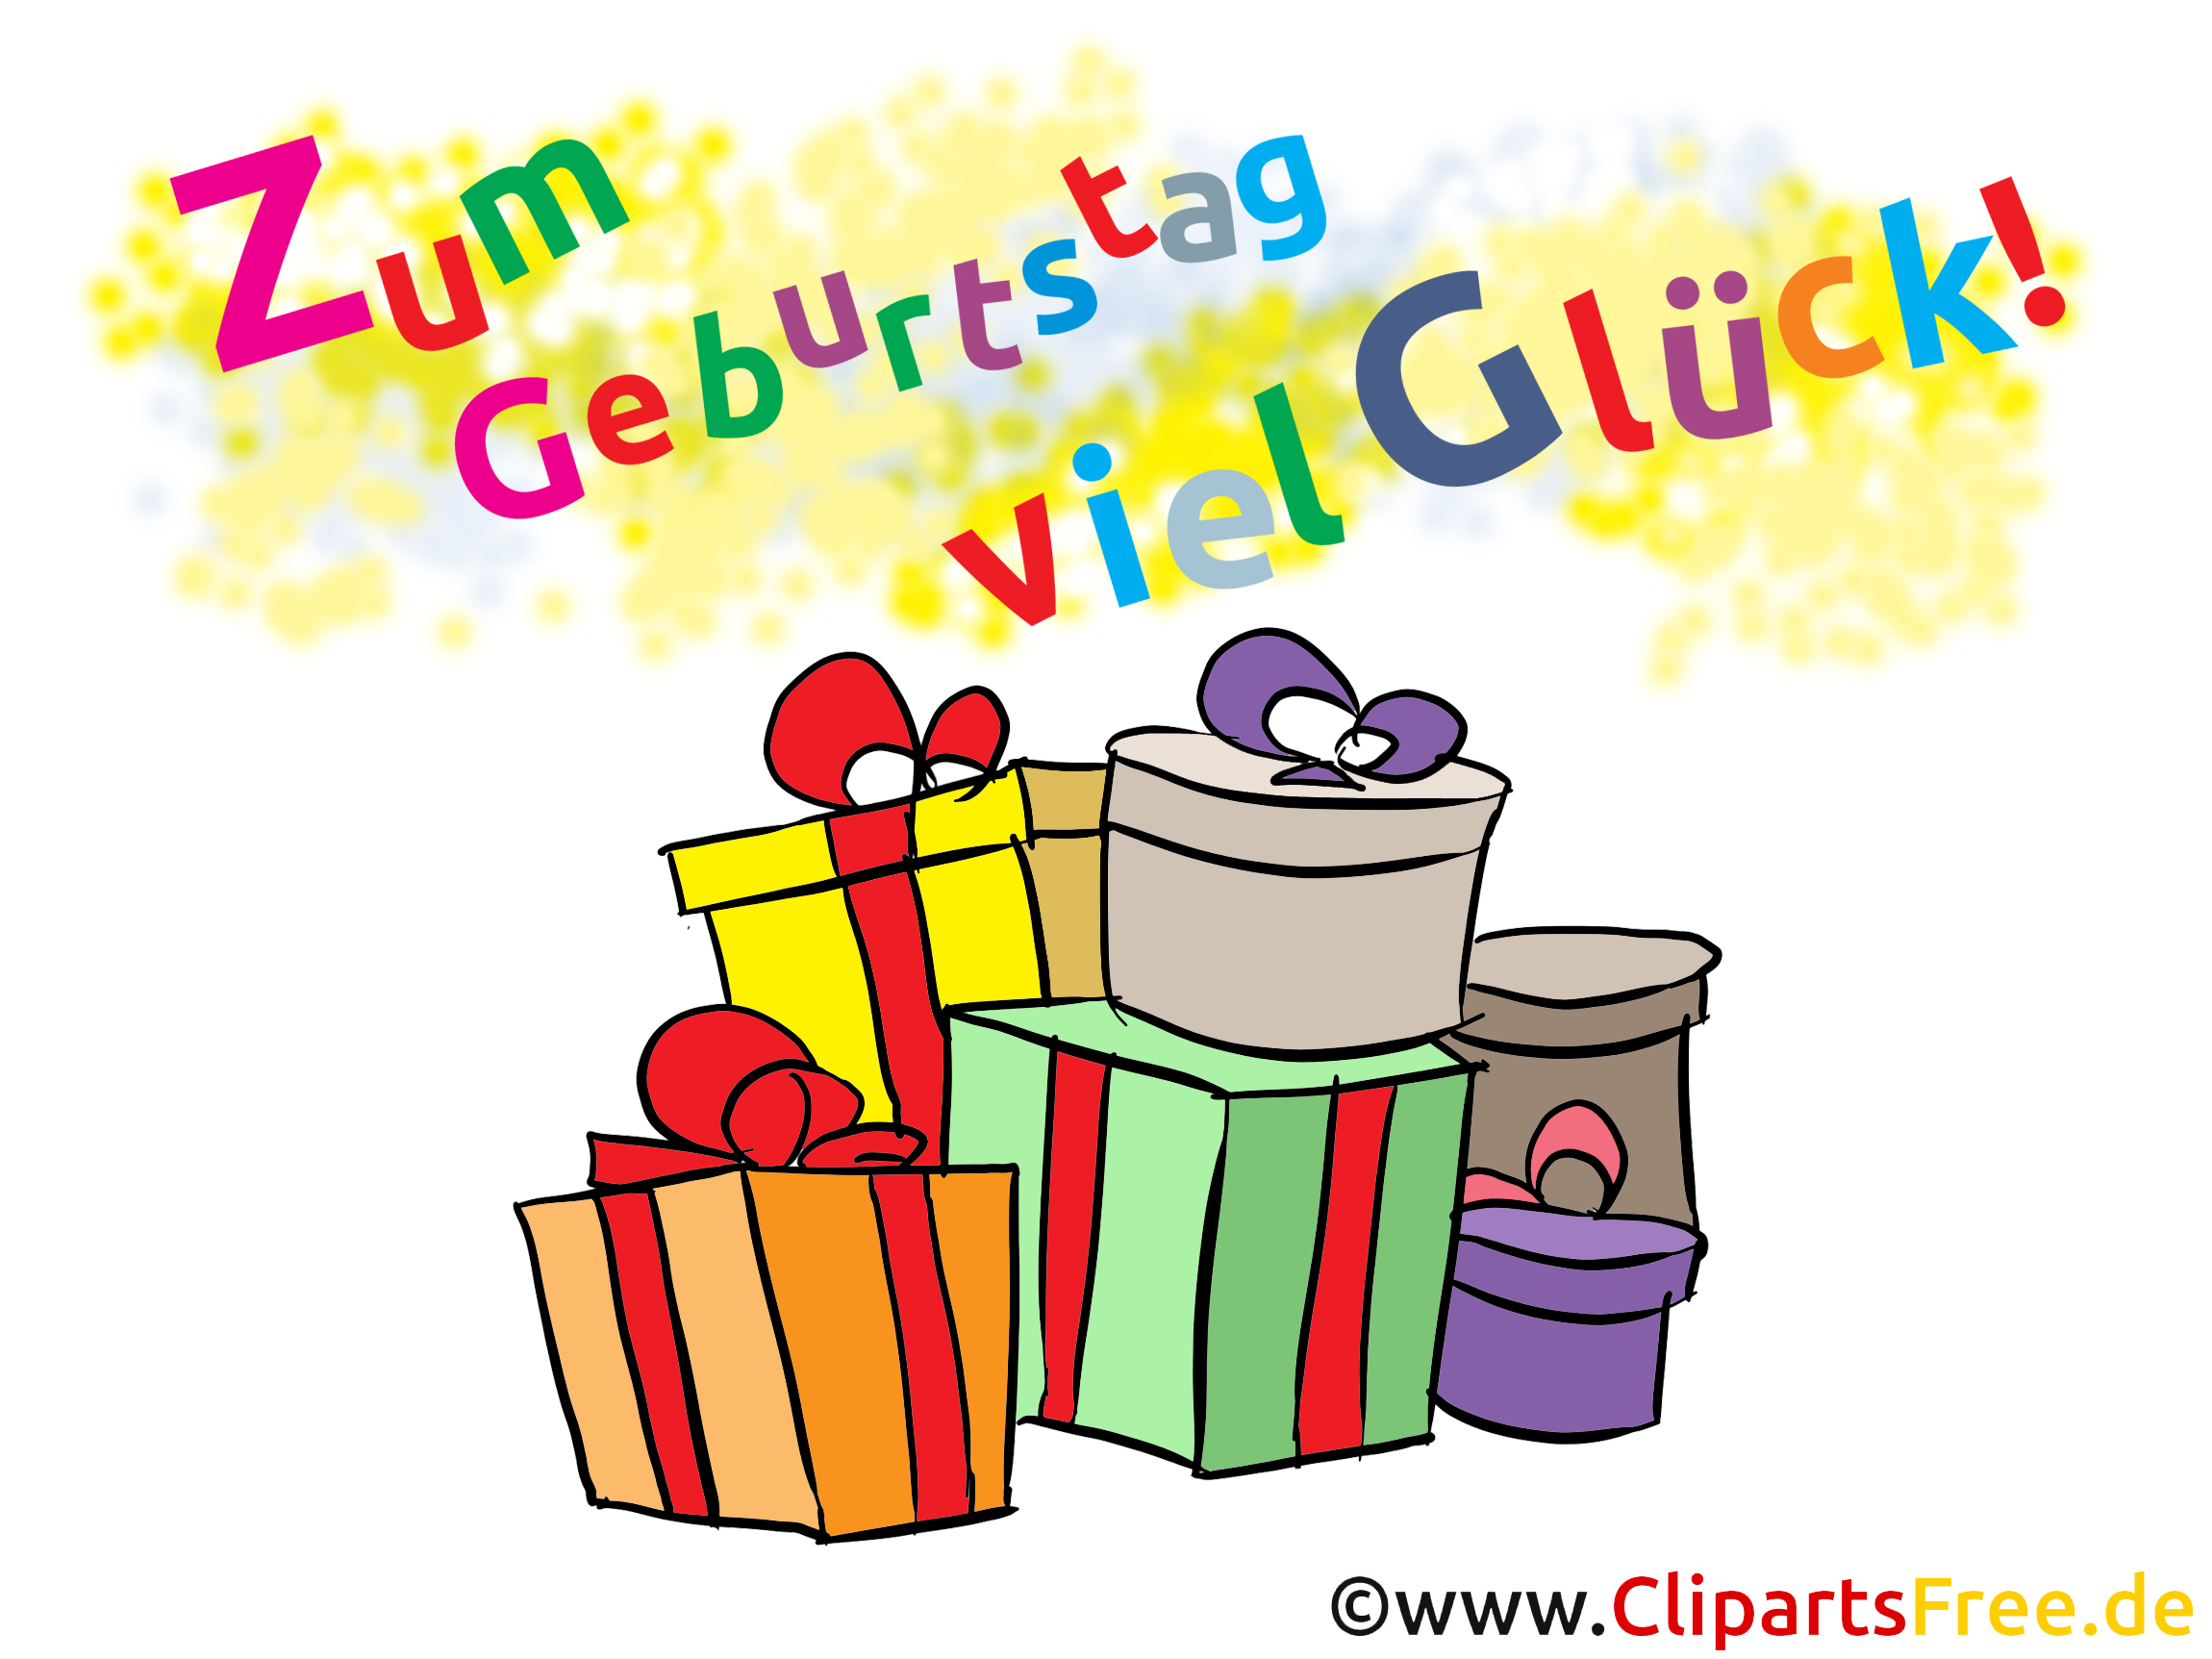 clipart geburtstag - photo #44